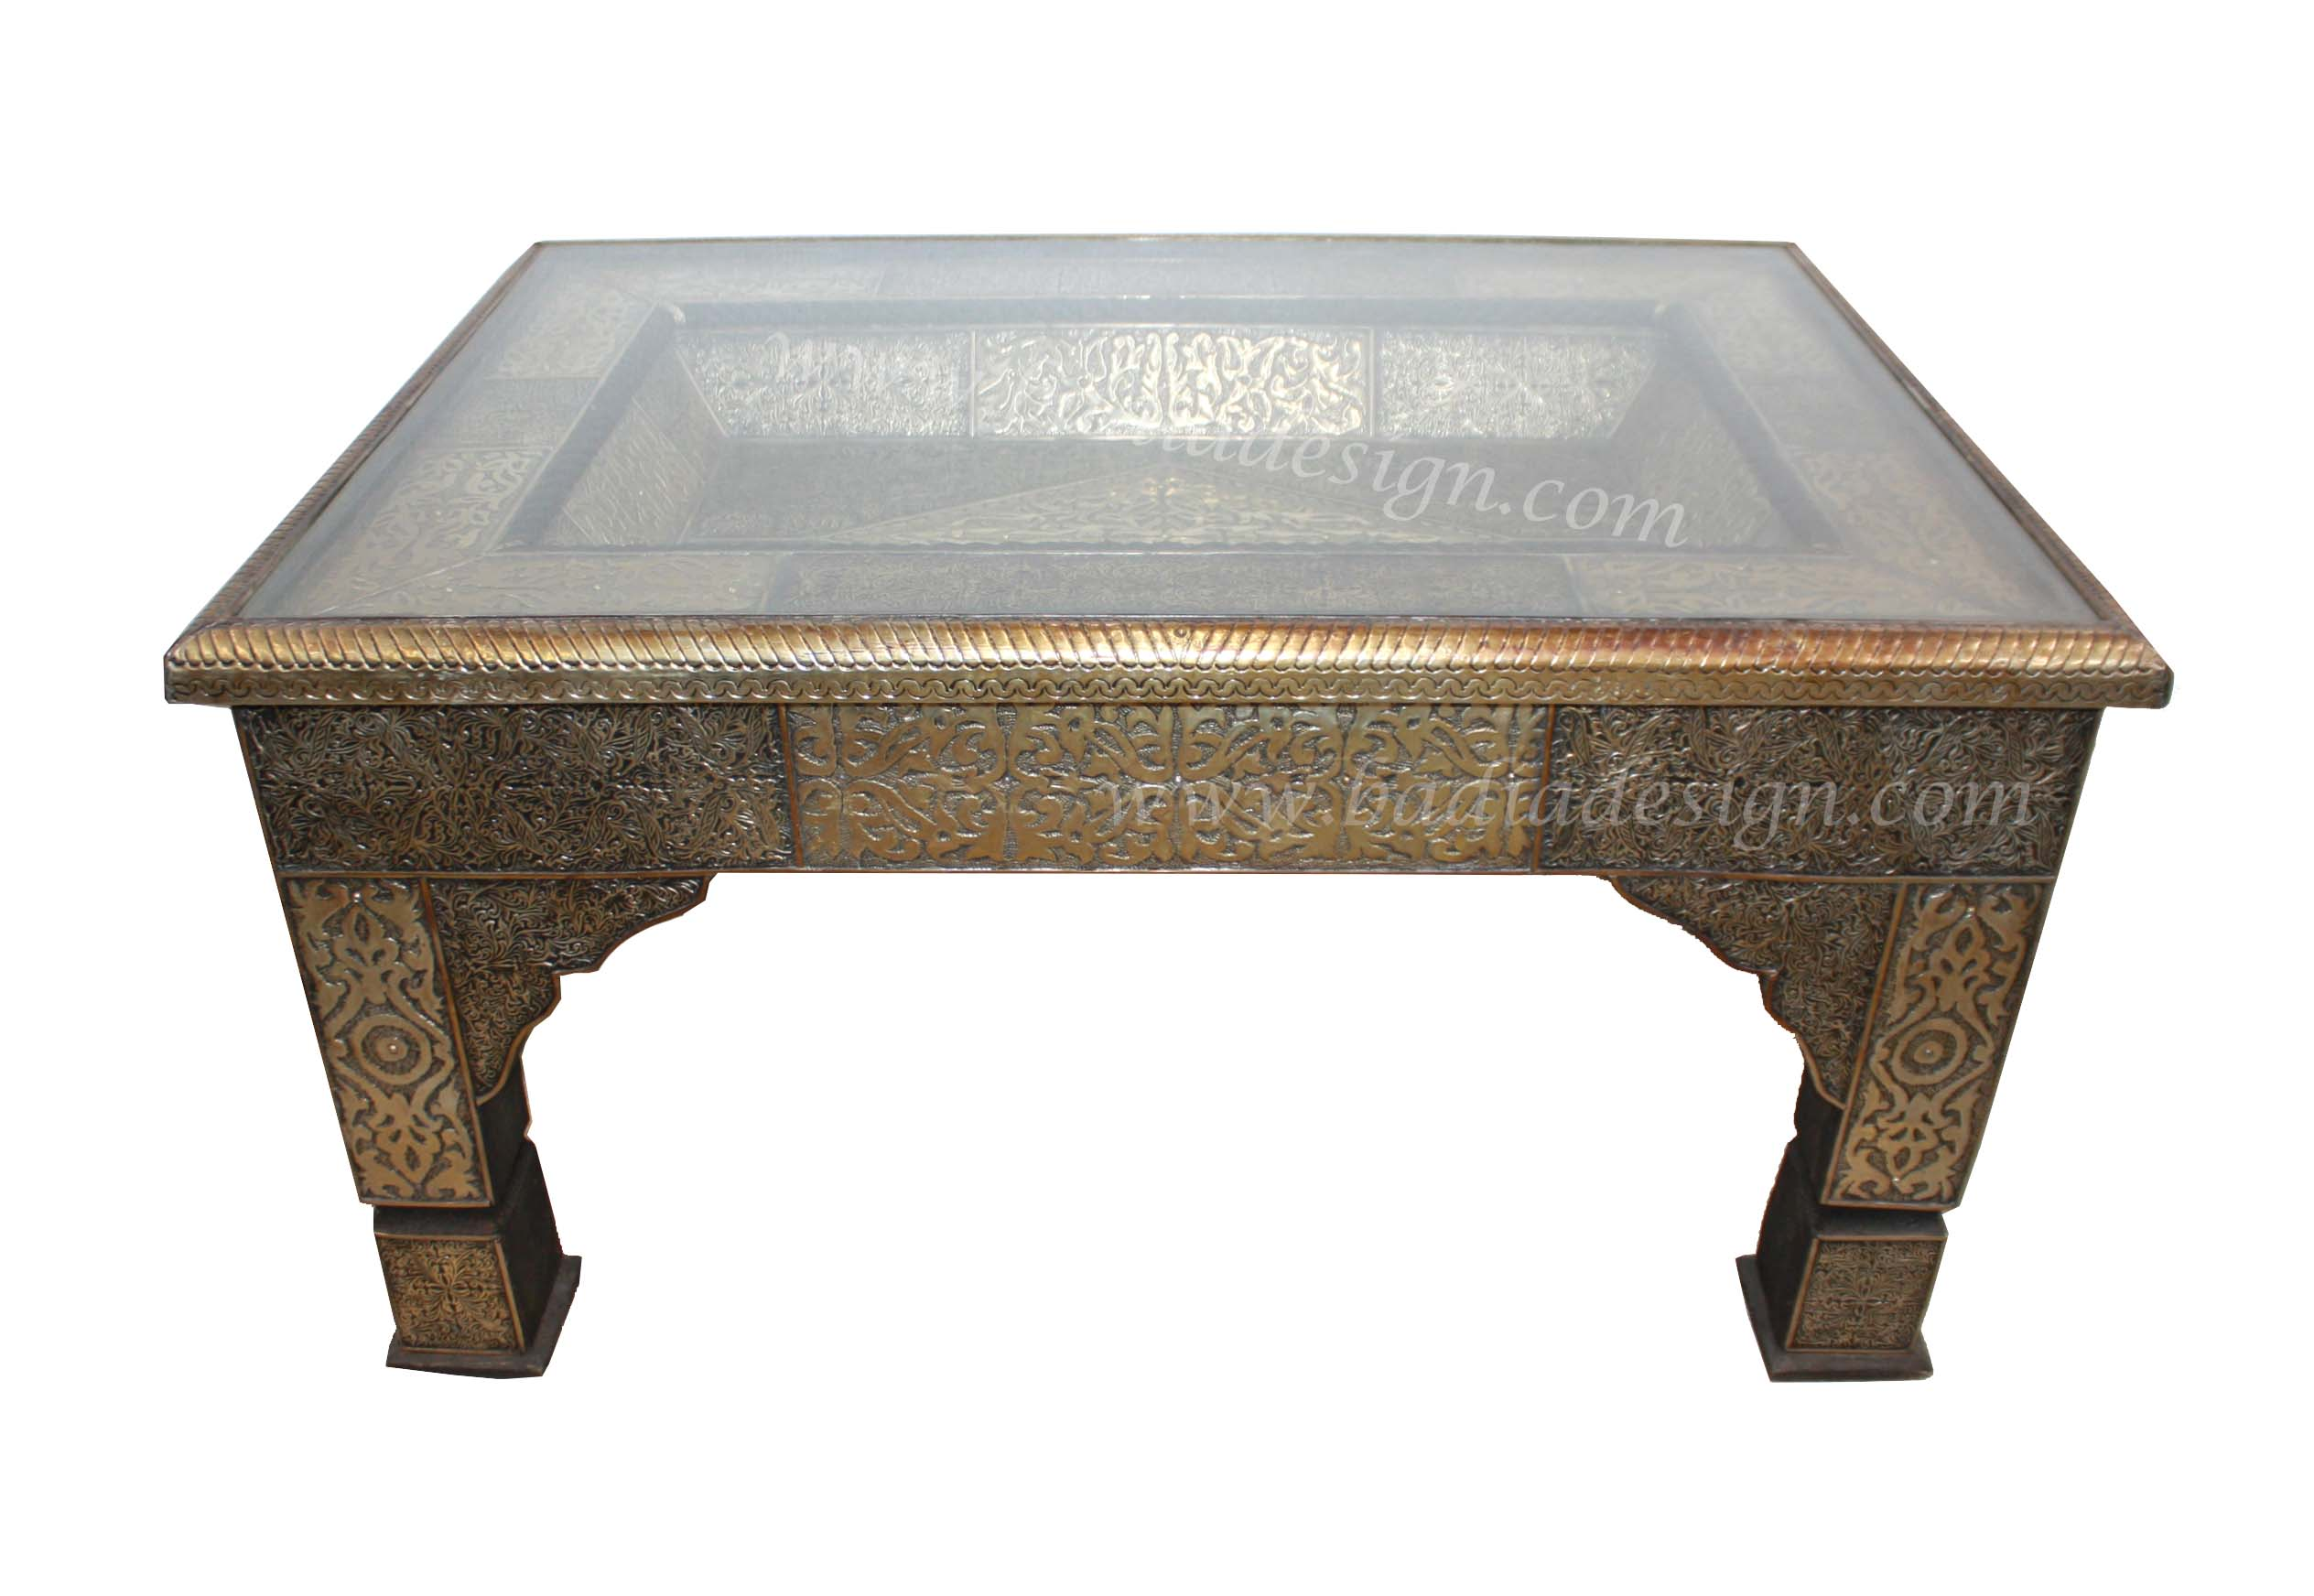 moroccan-carved-metal-coffee-table-br-st011-1.jpg